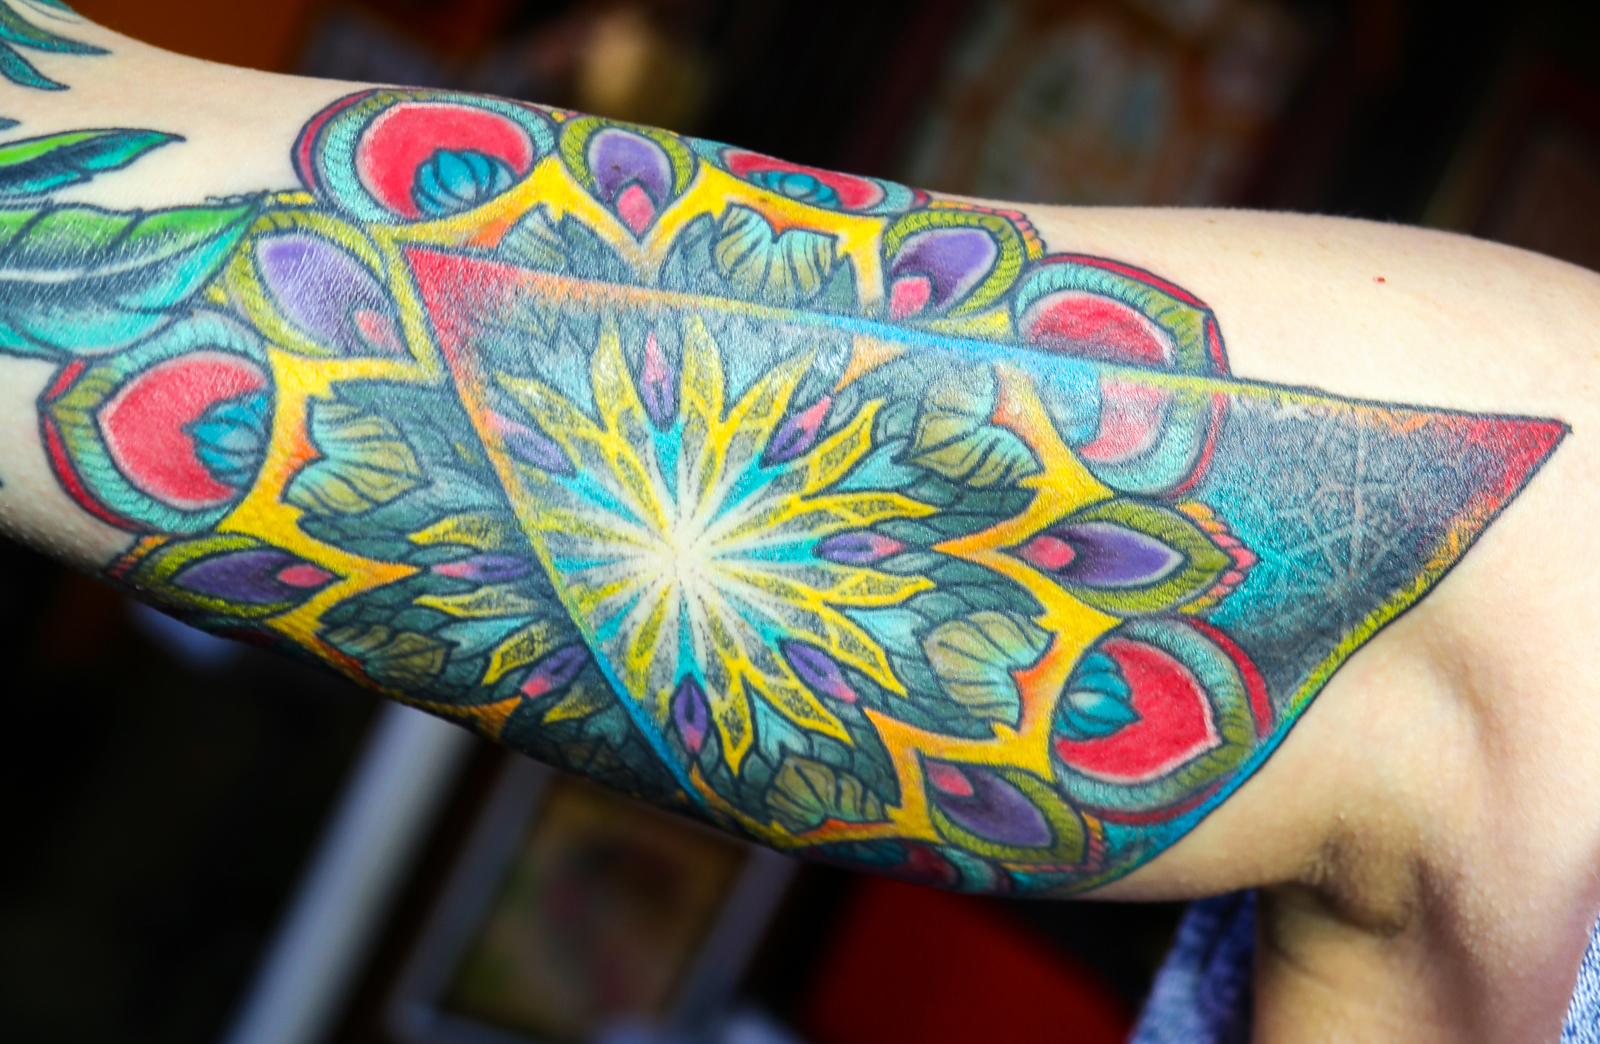 Color mandala Flower enrique bernal ejay tattoo.jpg